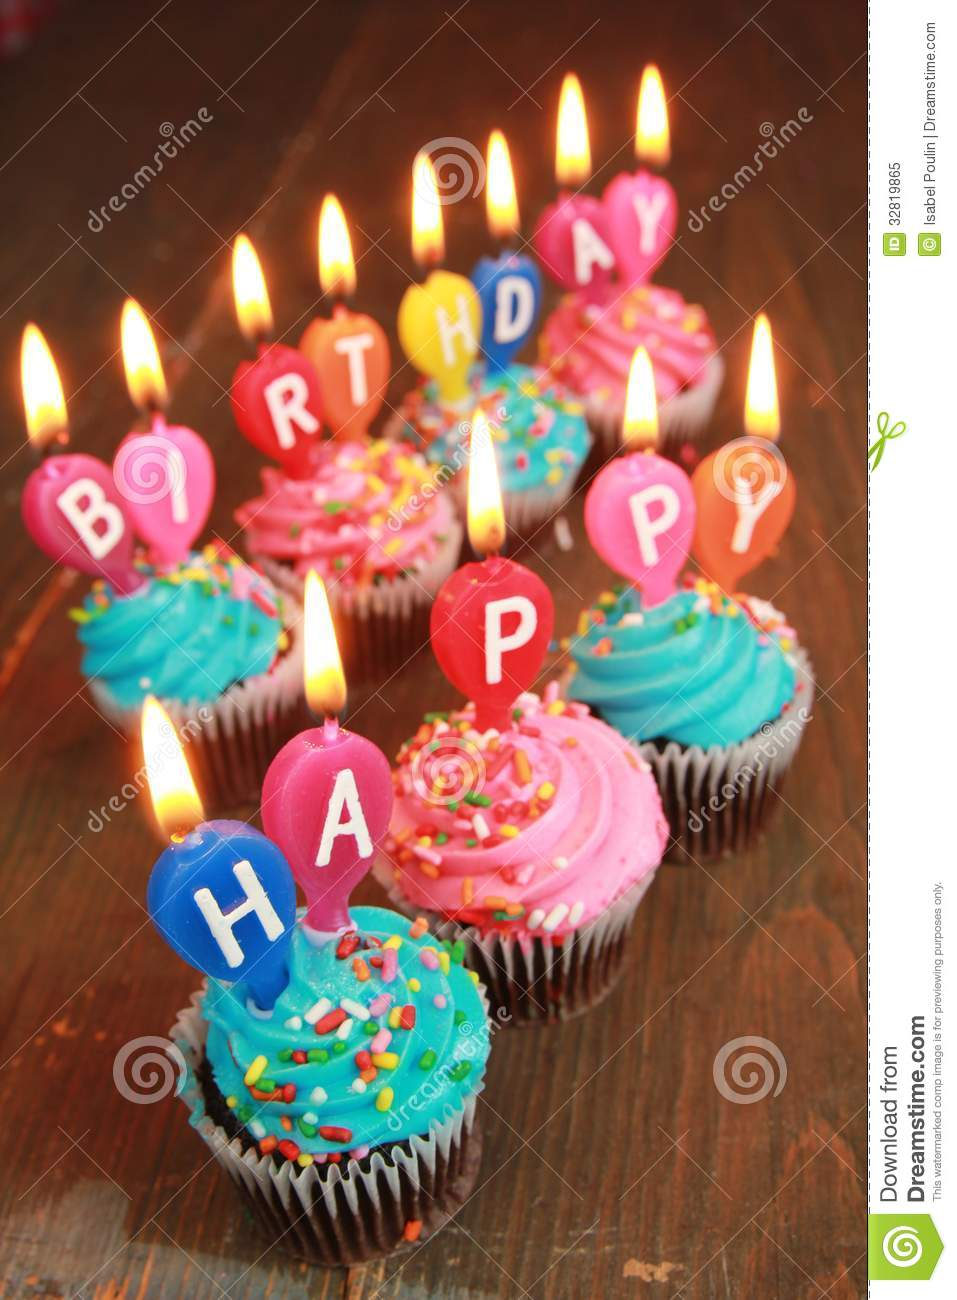 Happy Birthday Royalty Free Stock Photo Image 32819865